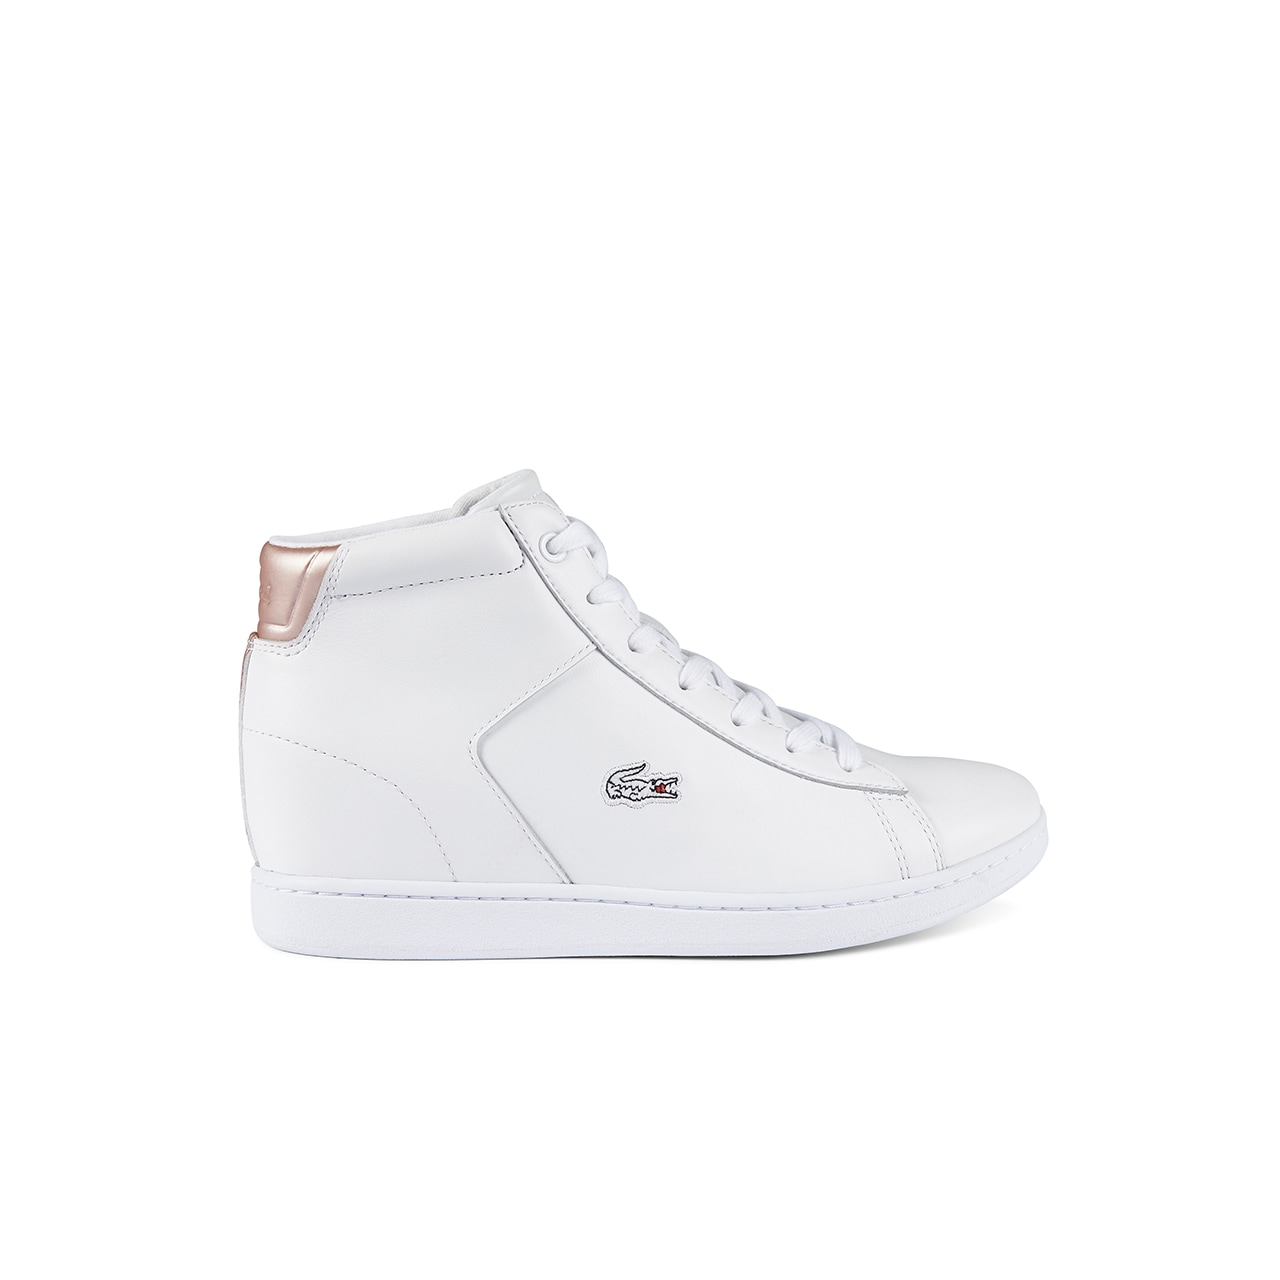 Women's Carnaby Evo Wedge Mid Leather Sneakers